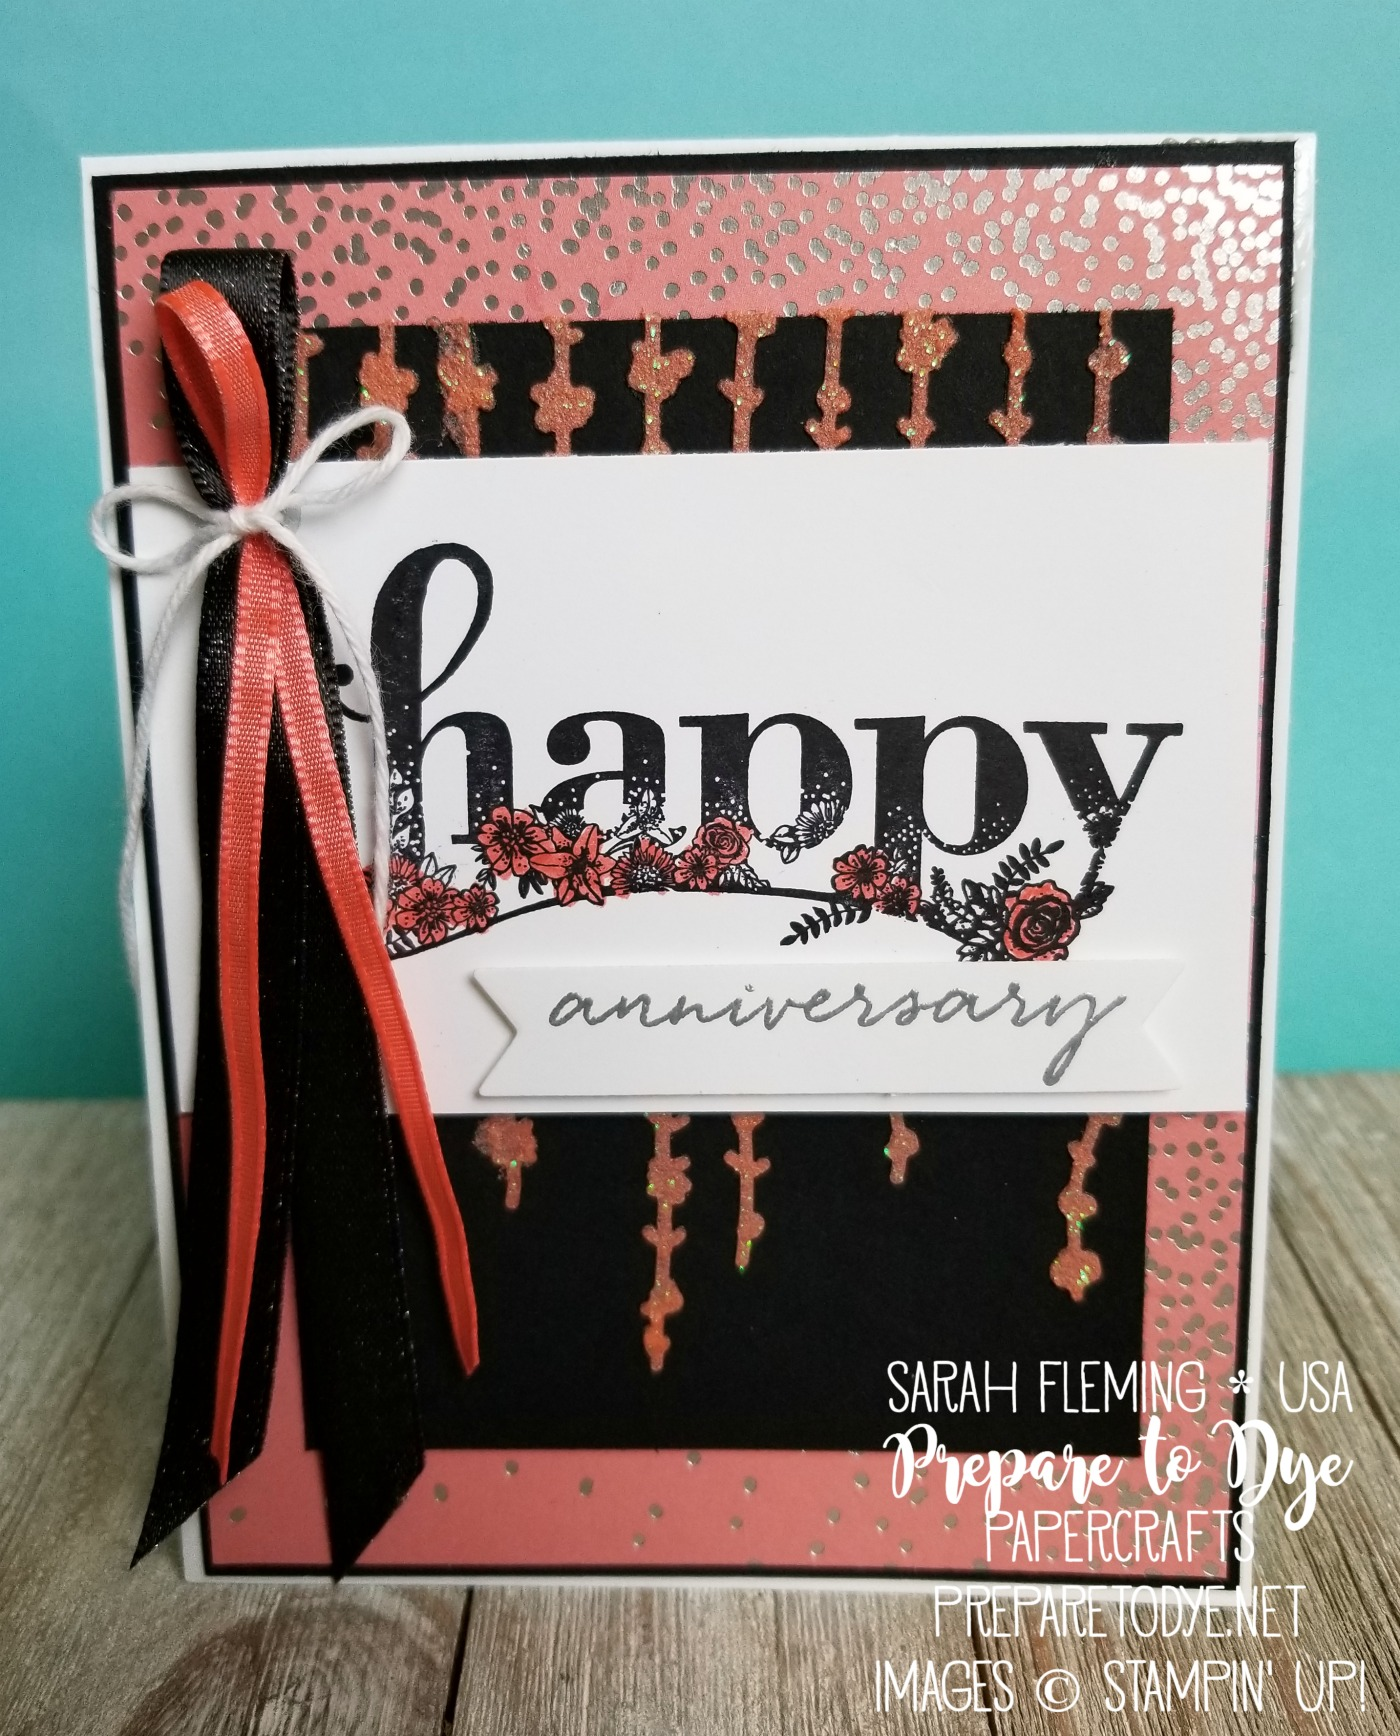 Stampin' Up! Happy Wishes handmade anniversary card with embossing paste, heat embossing, Sweet Soiree decorative masks - Sarah Fleming - Prepare to Dye Papercrafts